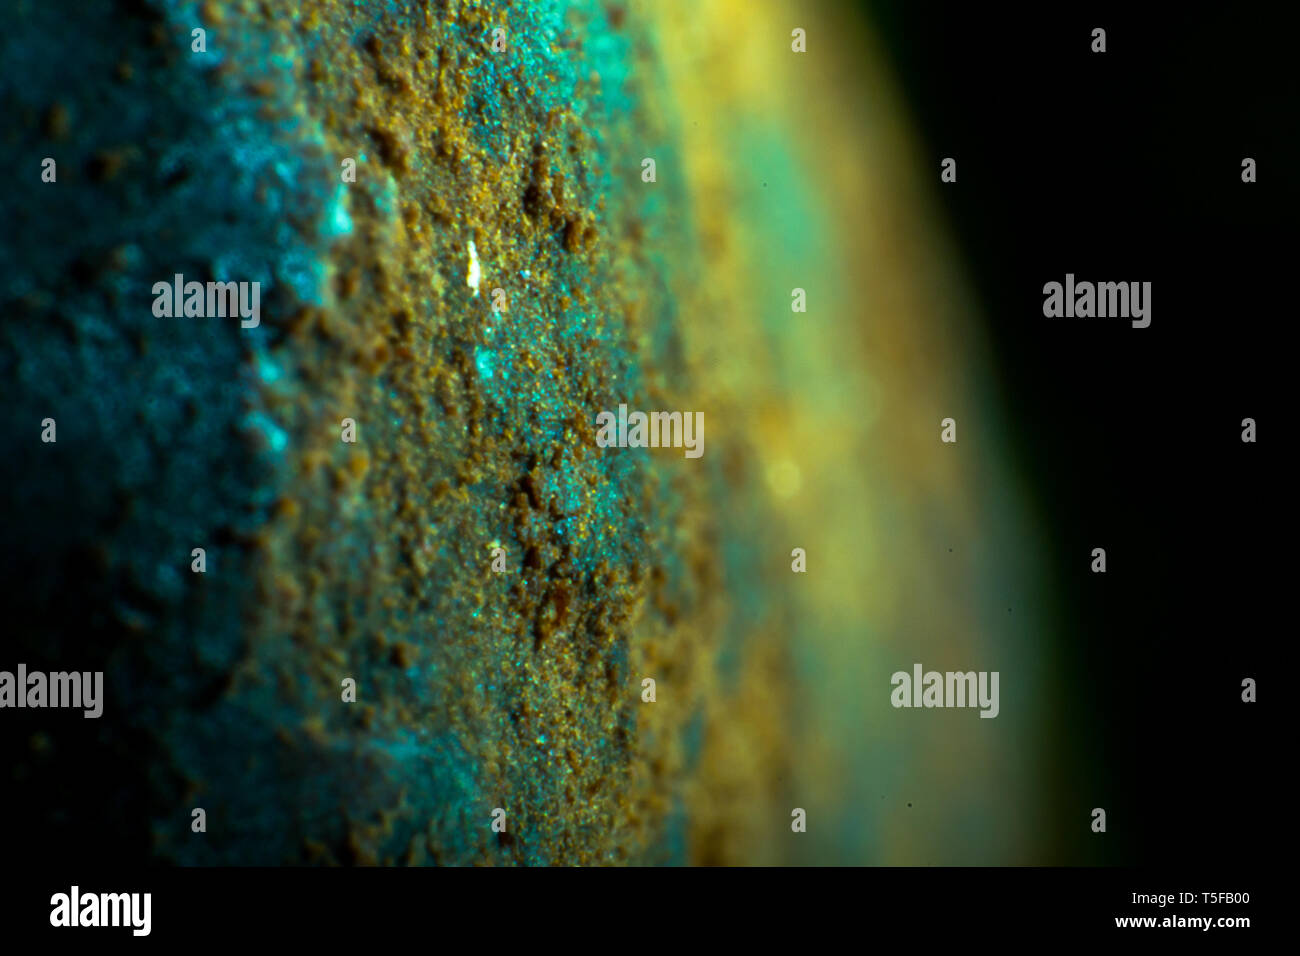 satellite view planet abstract - Stock Image